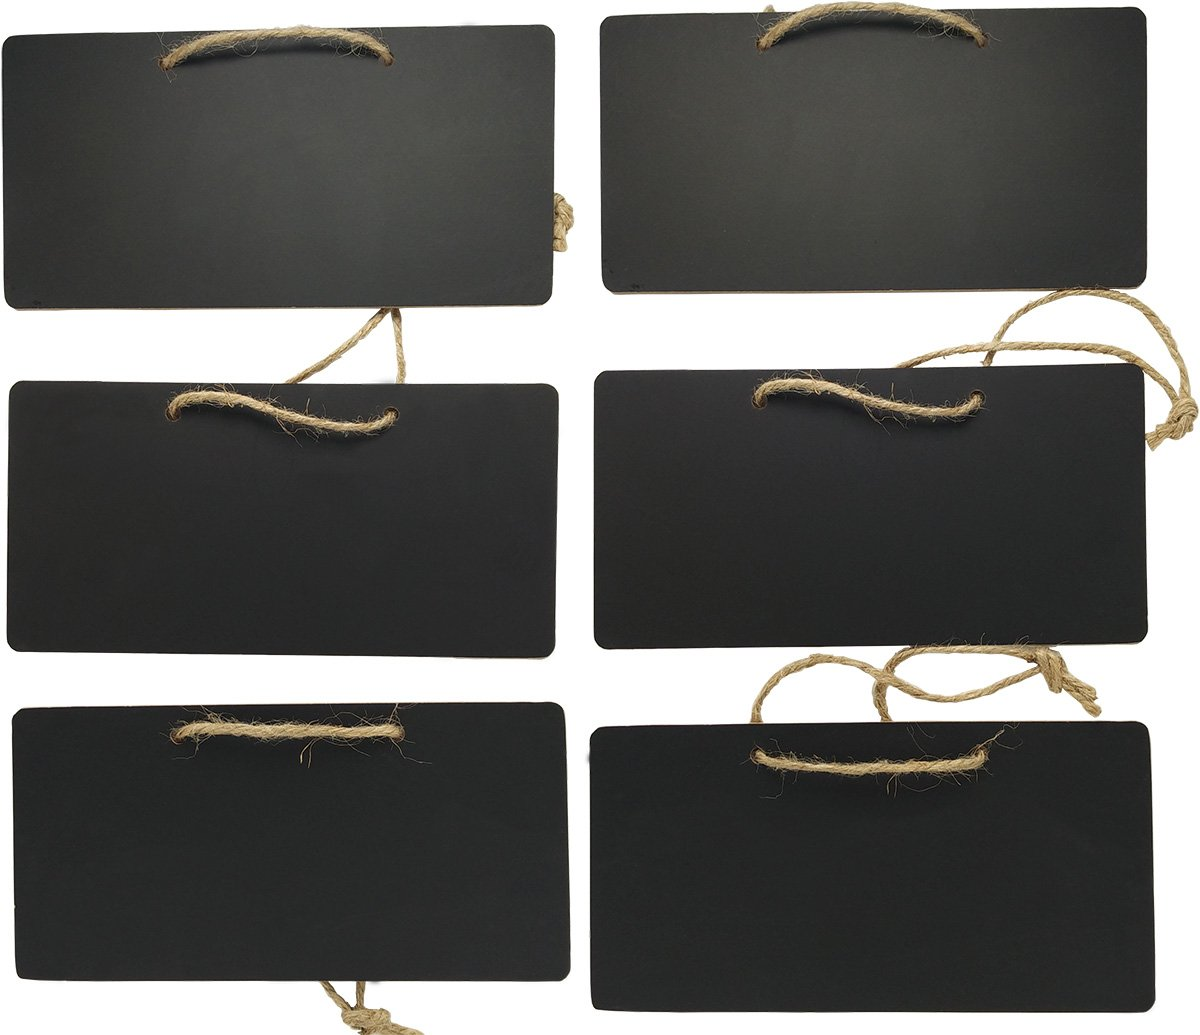 Erasable Rectangle Chalkboards Blackboards display for Message Board Sign , Set of 6 By UHQ Home Products